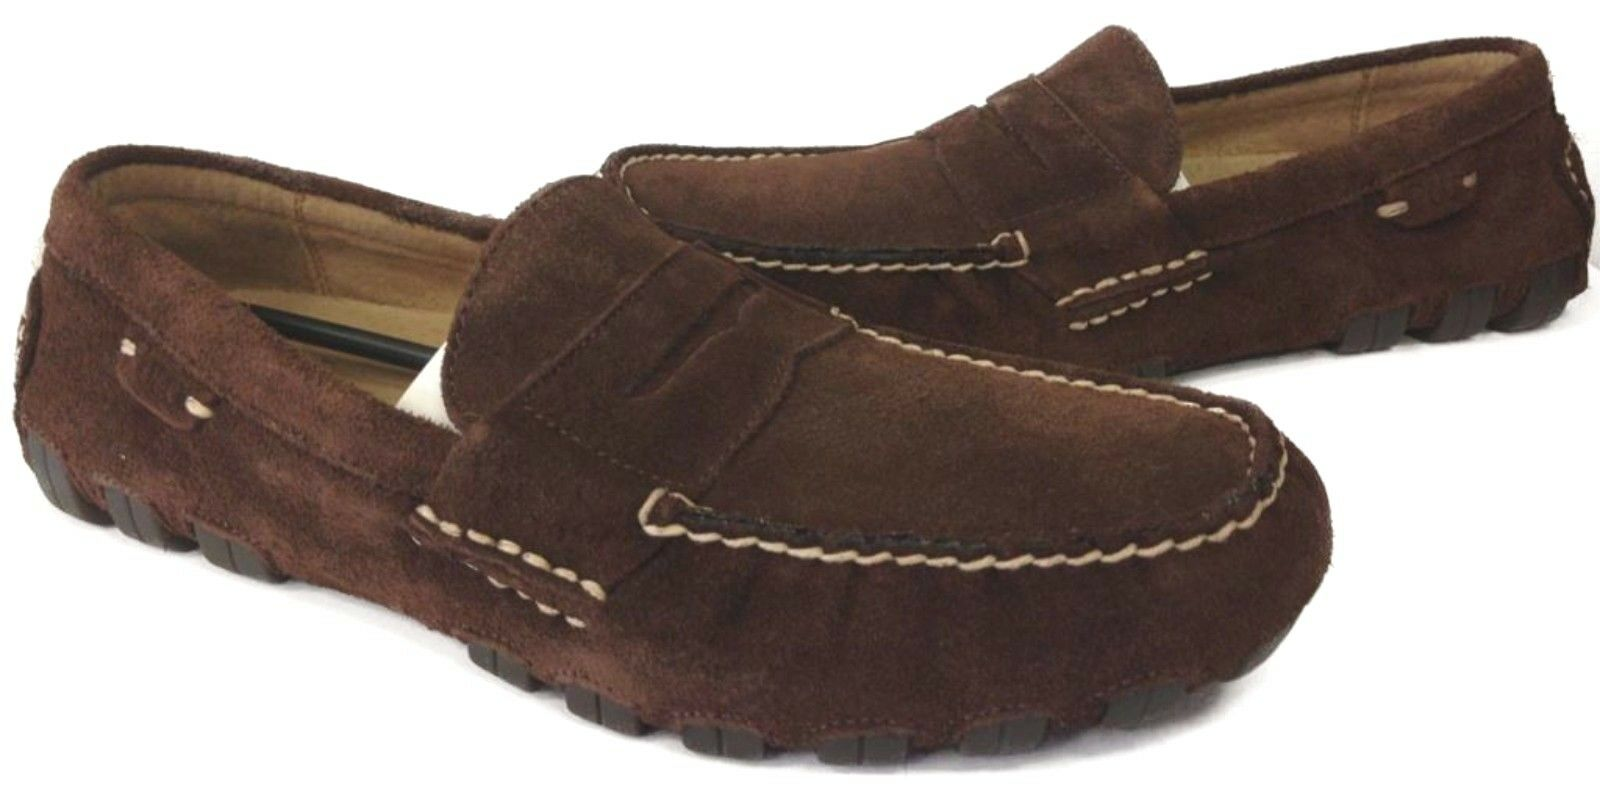 POLO RALPH LAUREN 803187127213 ARKLEY PENNY II Mn´s (M) Brown Suede Loafer Shoes